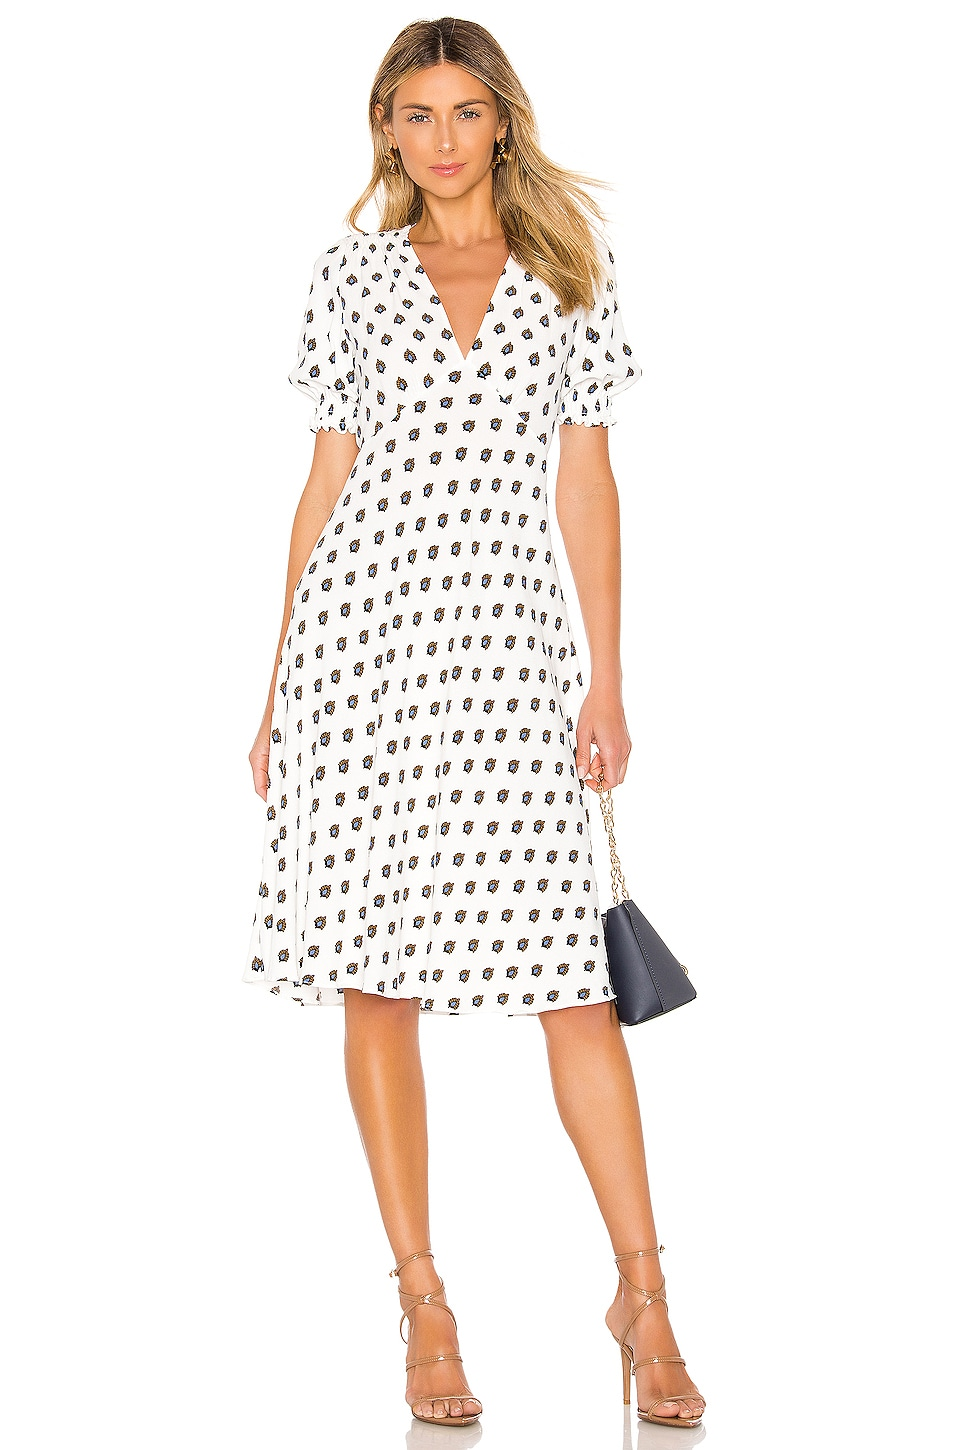 Diane von Furstenberg Jemma Dress in Fleur Dot & Ivory